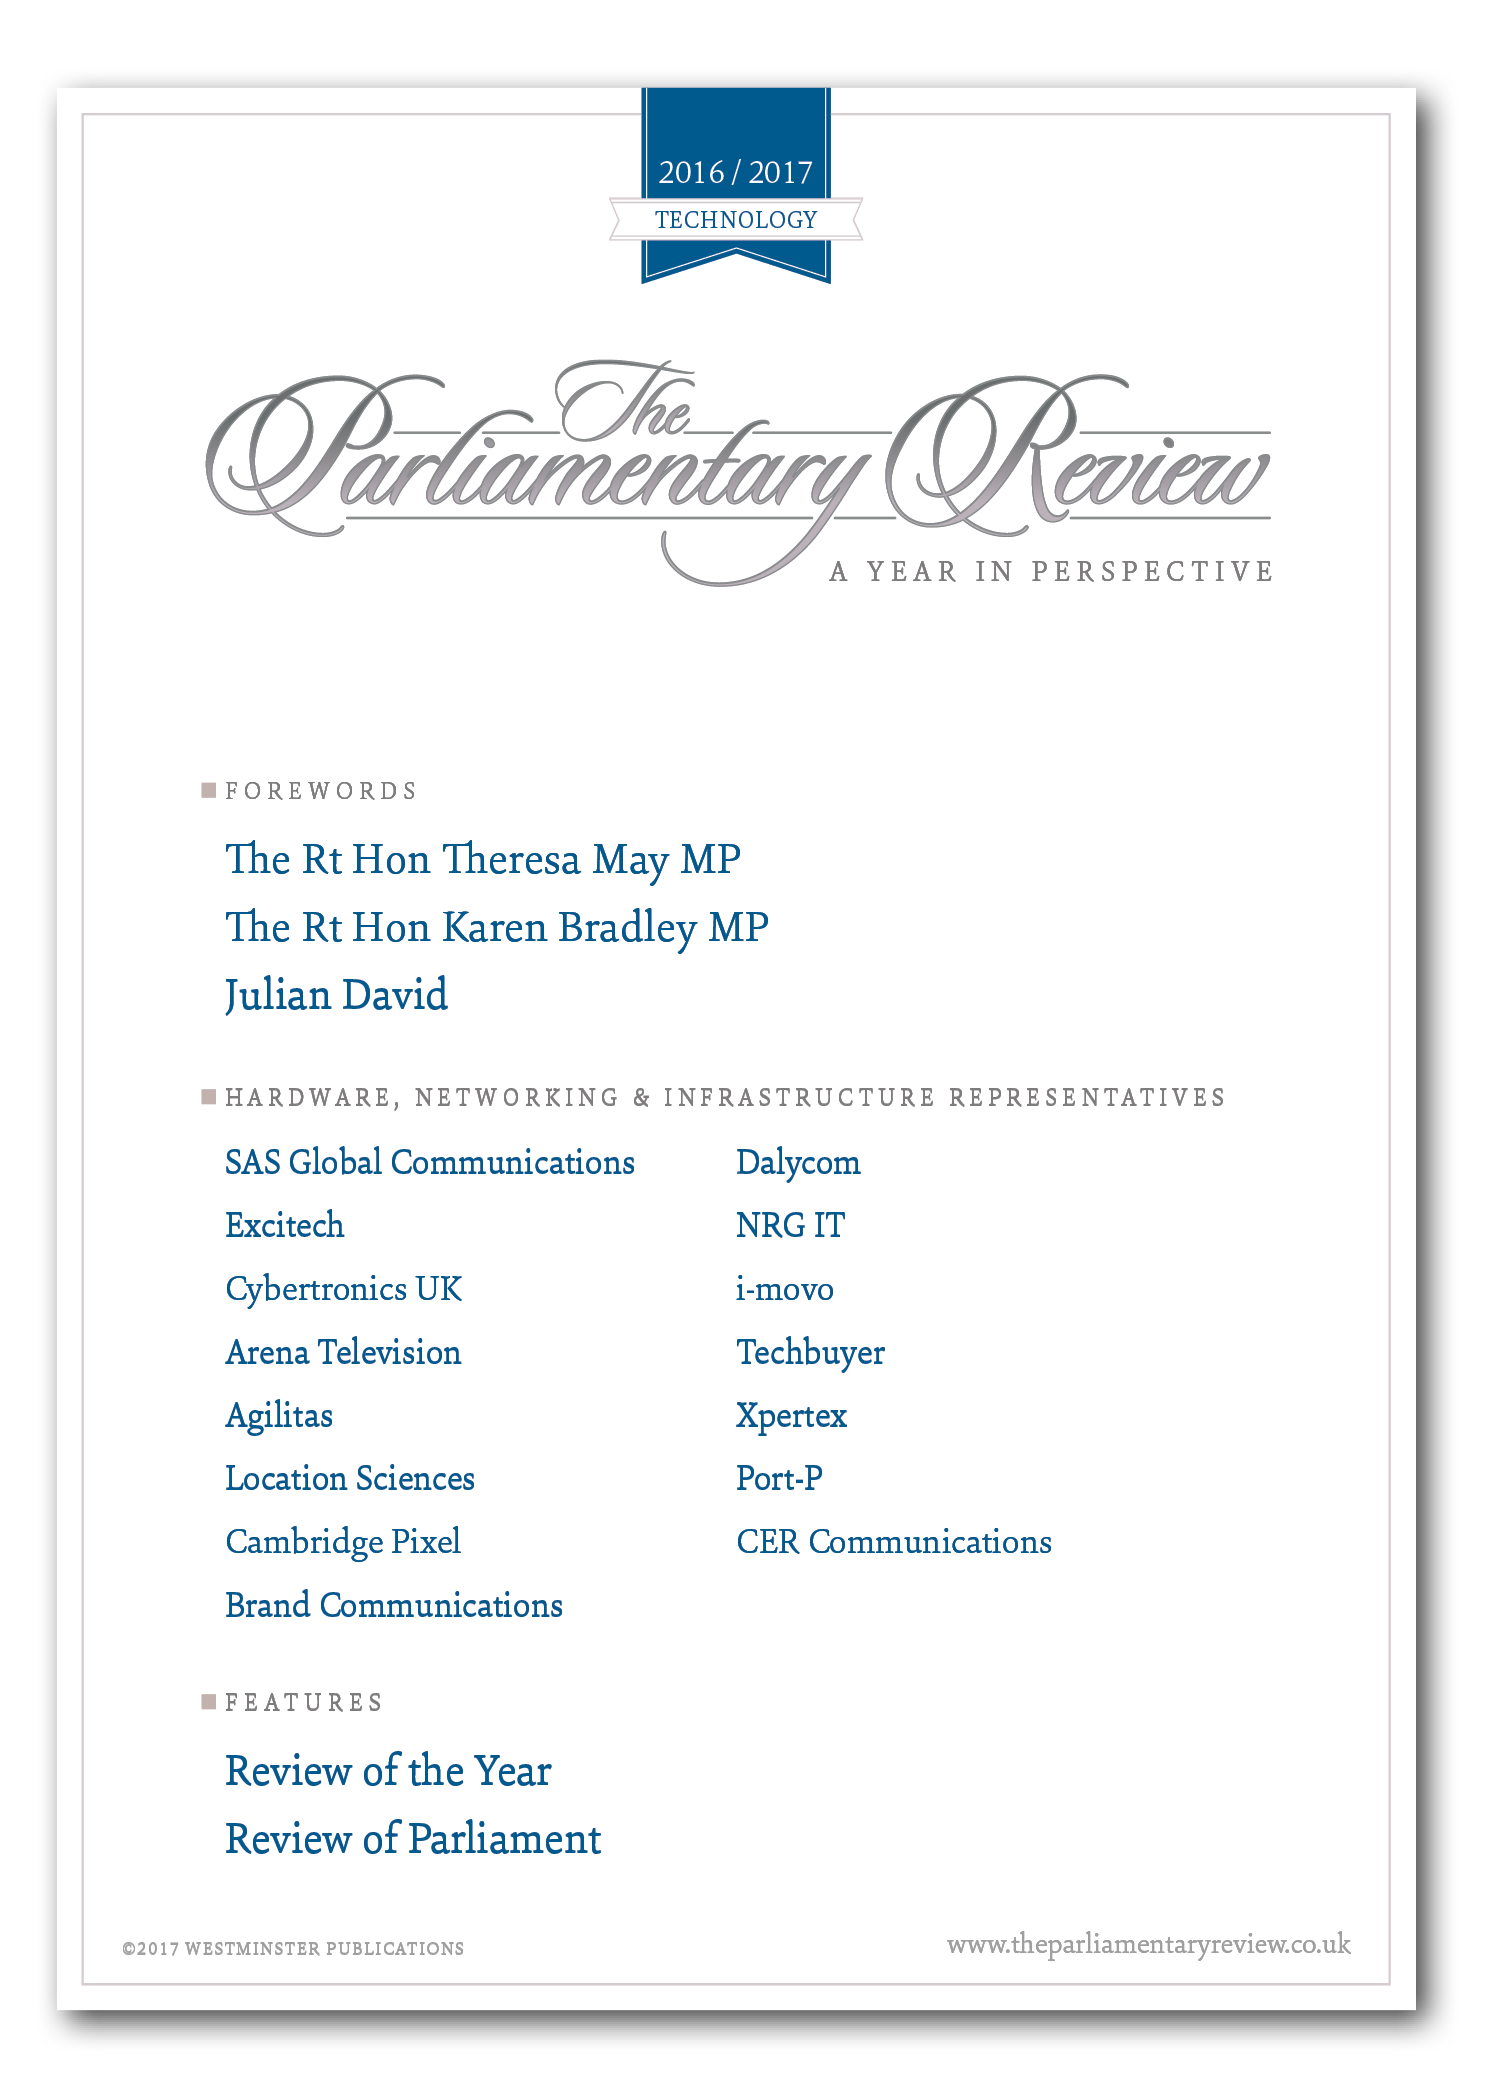 The-Parliamentary-Review.png